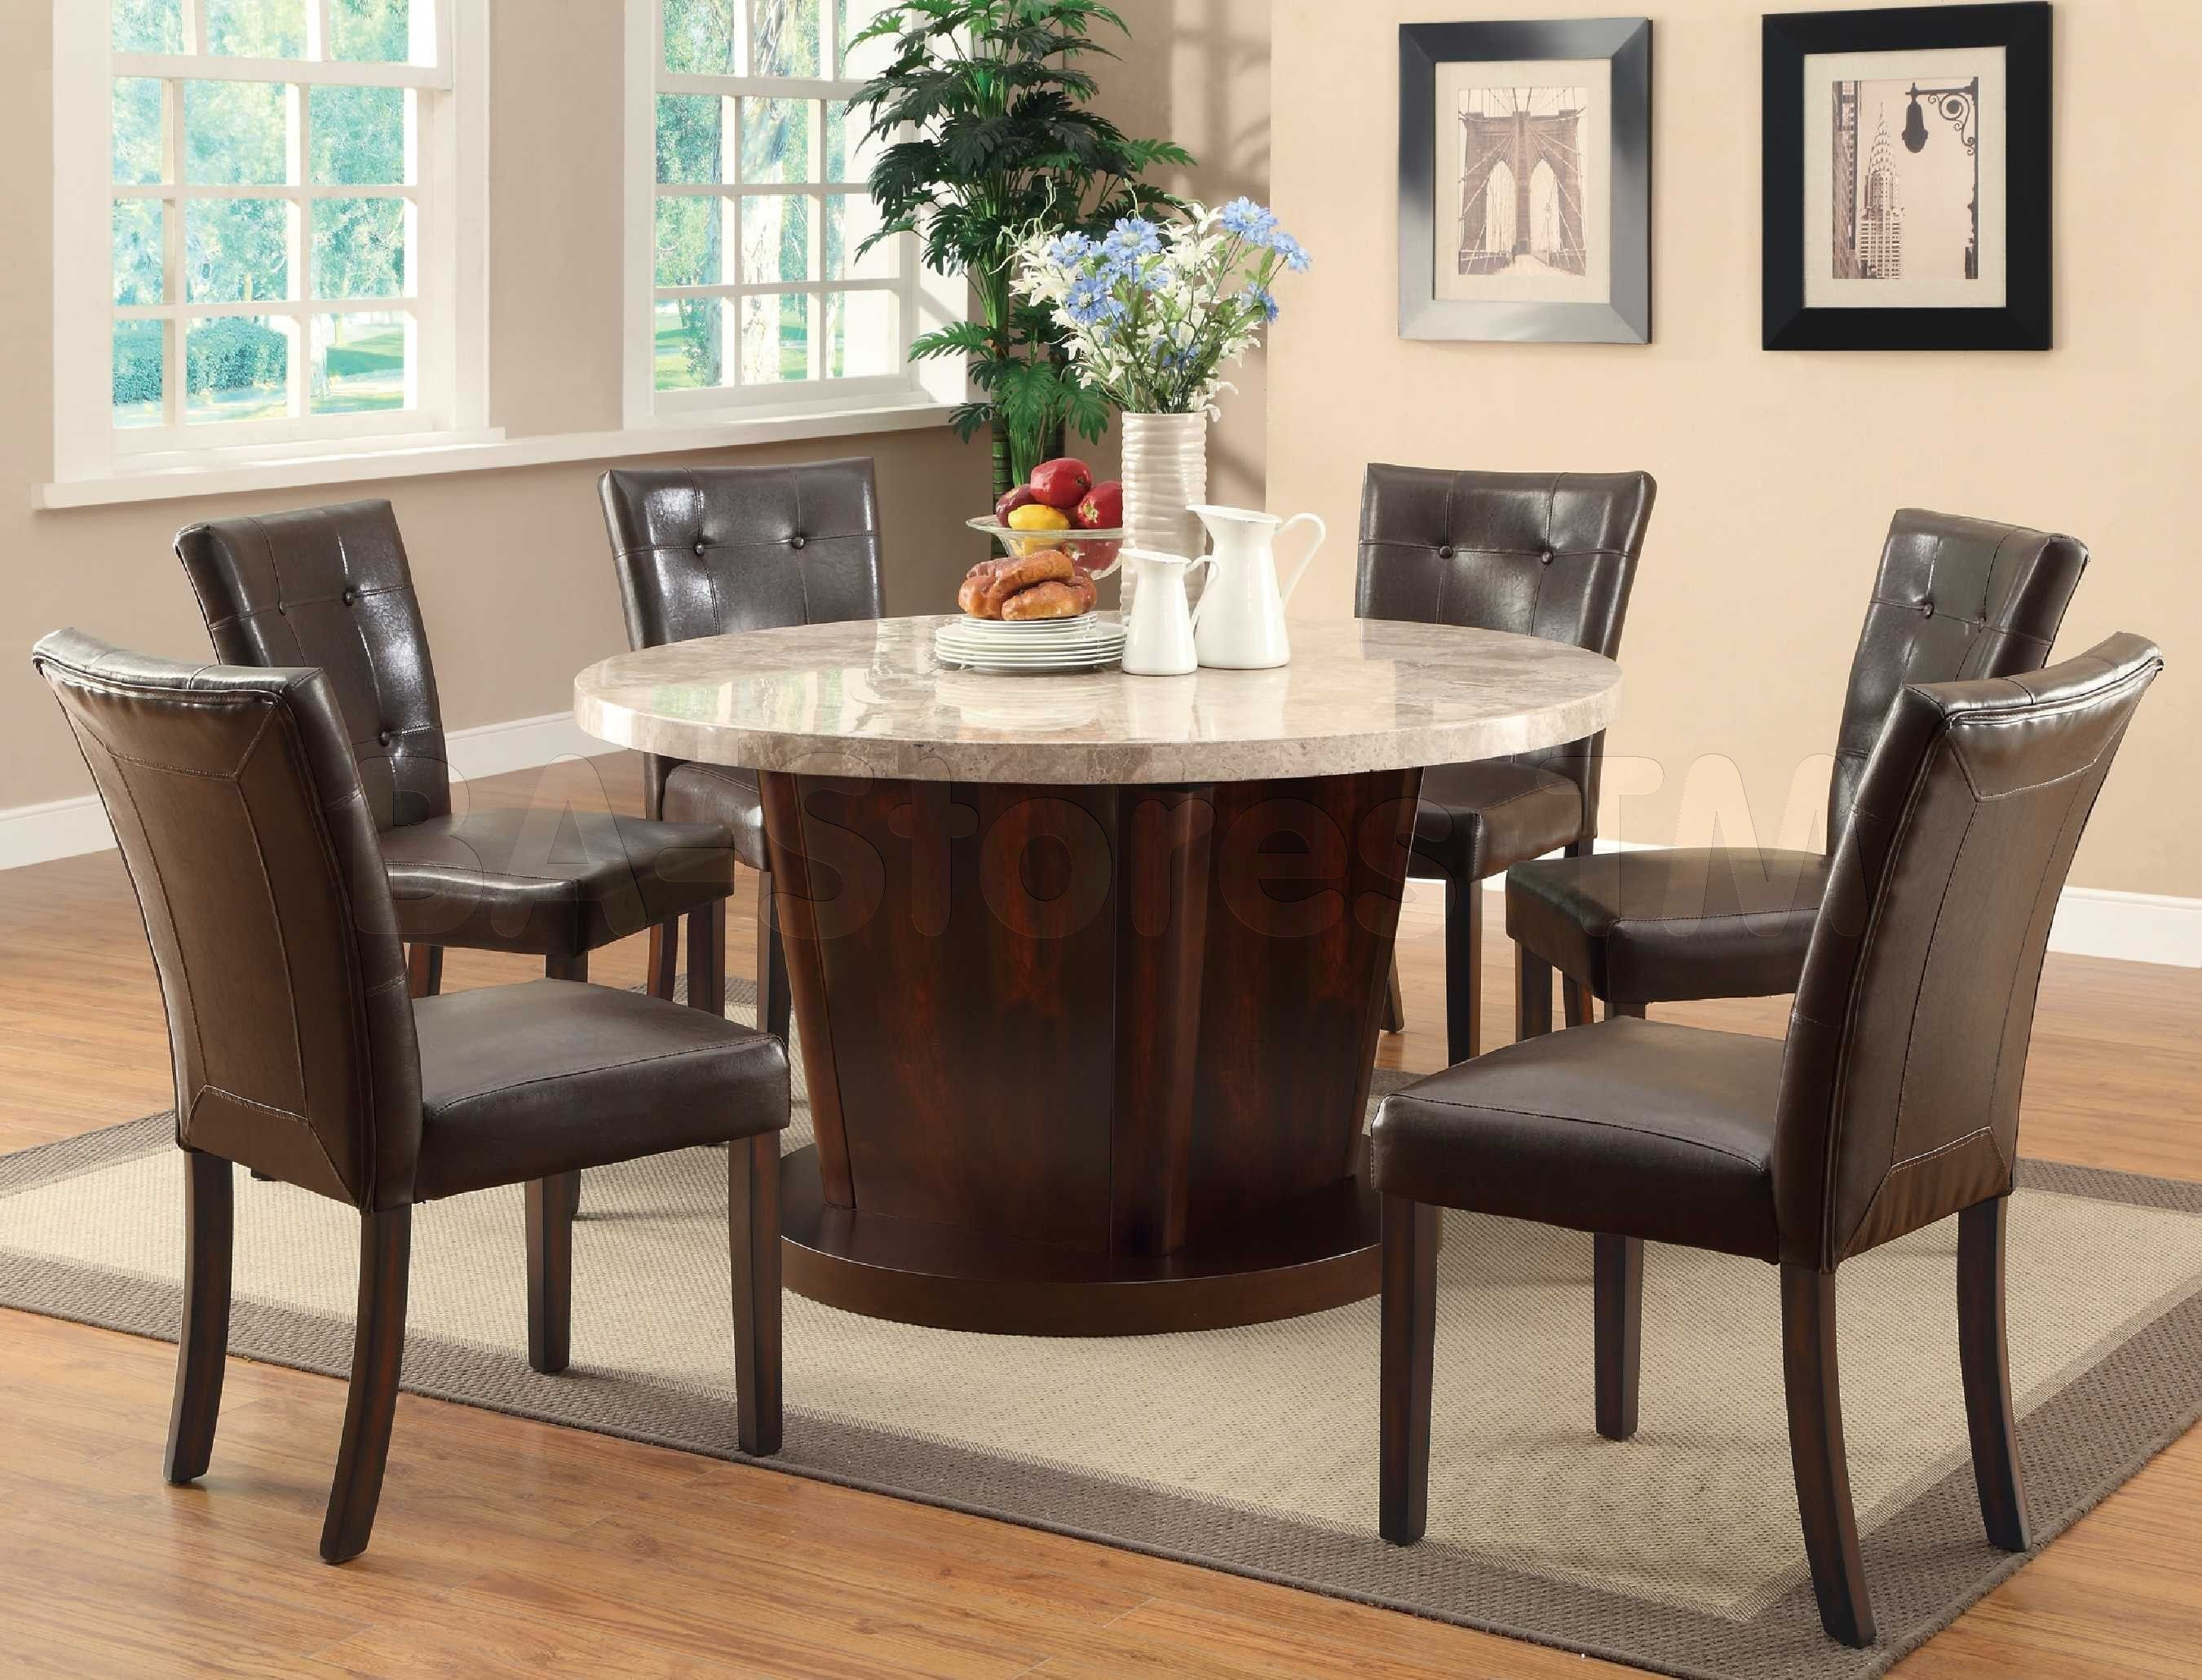 Low Cost Dining Room Tables Dishy Room Tables Cheap